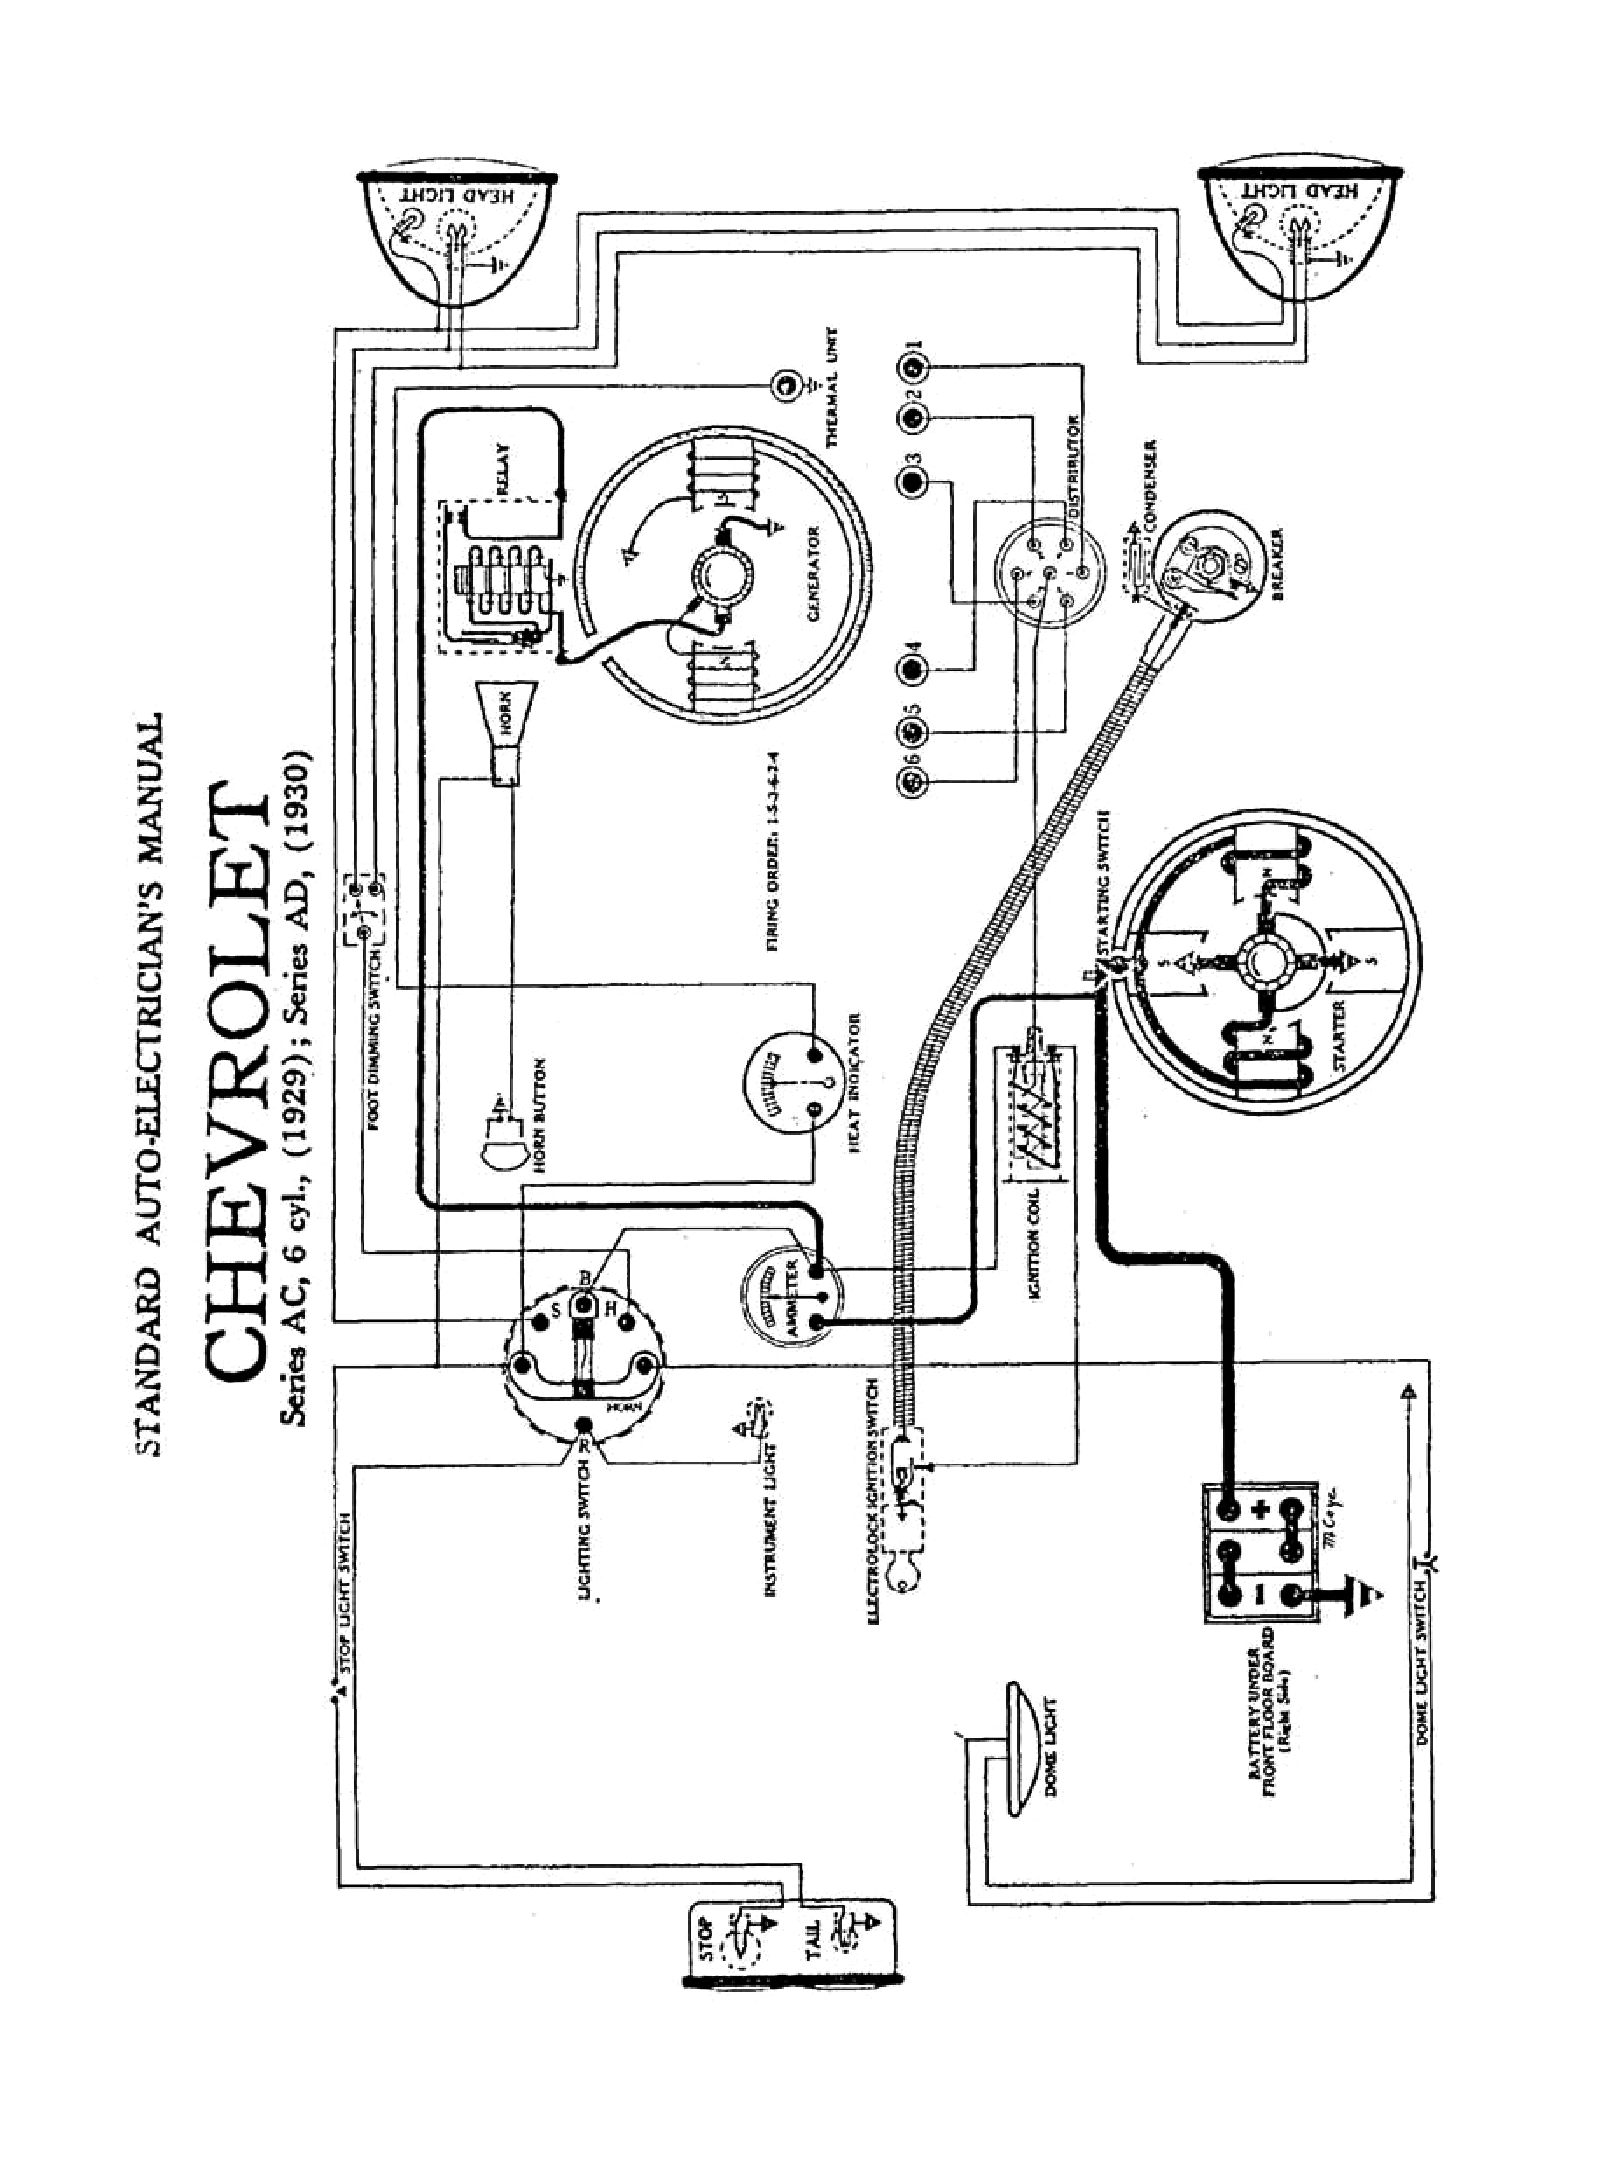 1931 Chevrolet Wiring Diagram moreover Chevy Hei Wiring Diagram In Conversion Kit Problems additionally Firing Order For 305 Chevy Motor likewise Chevy Trailblazer Straight Six Engine Diagram likewise Gm 350 Engine Serial Numbers. on 235 chevy 6 cylinder engine diagram